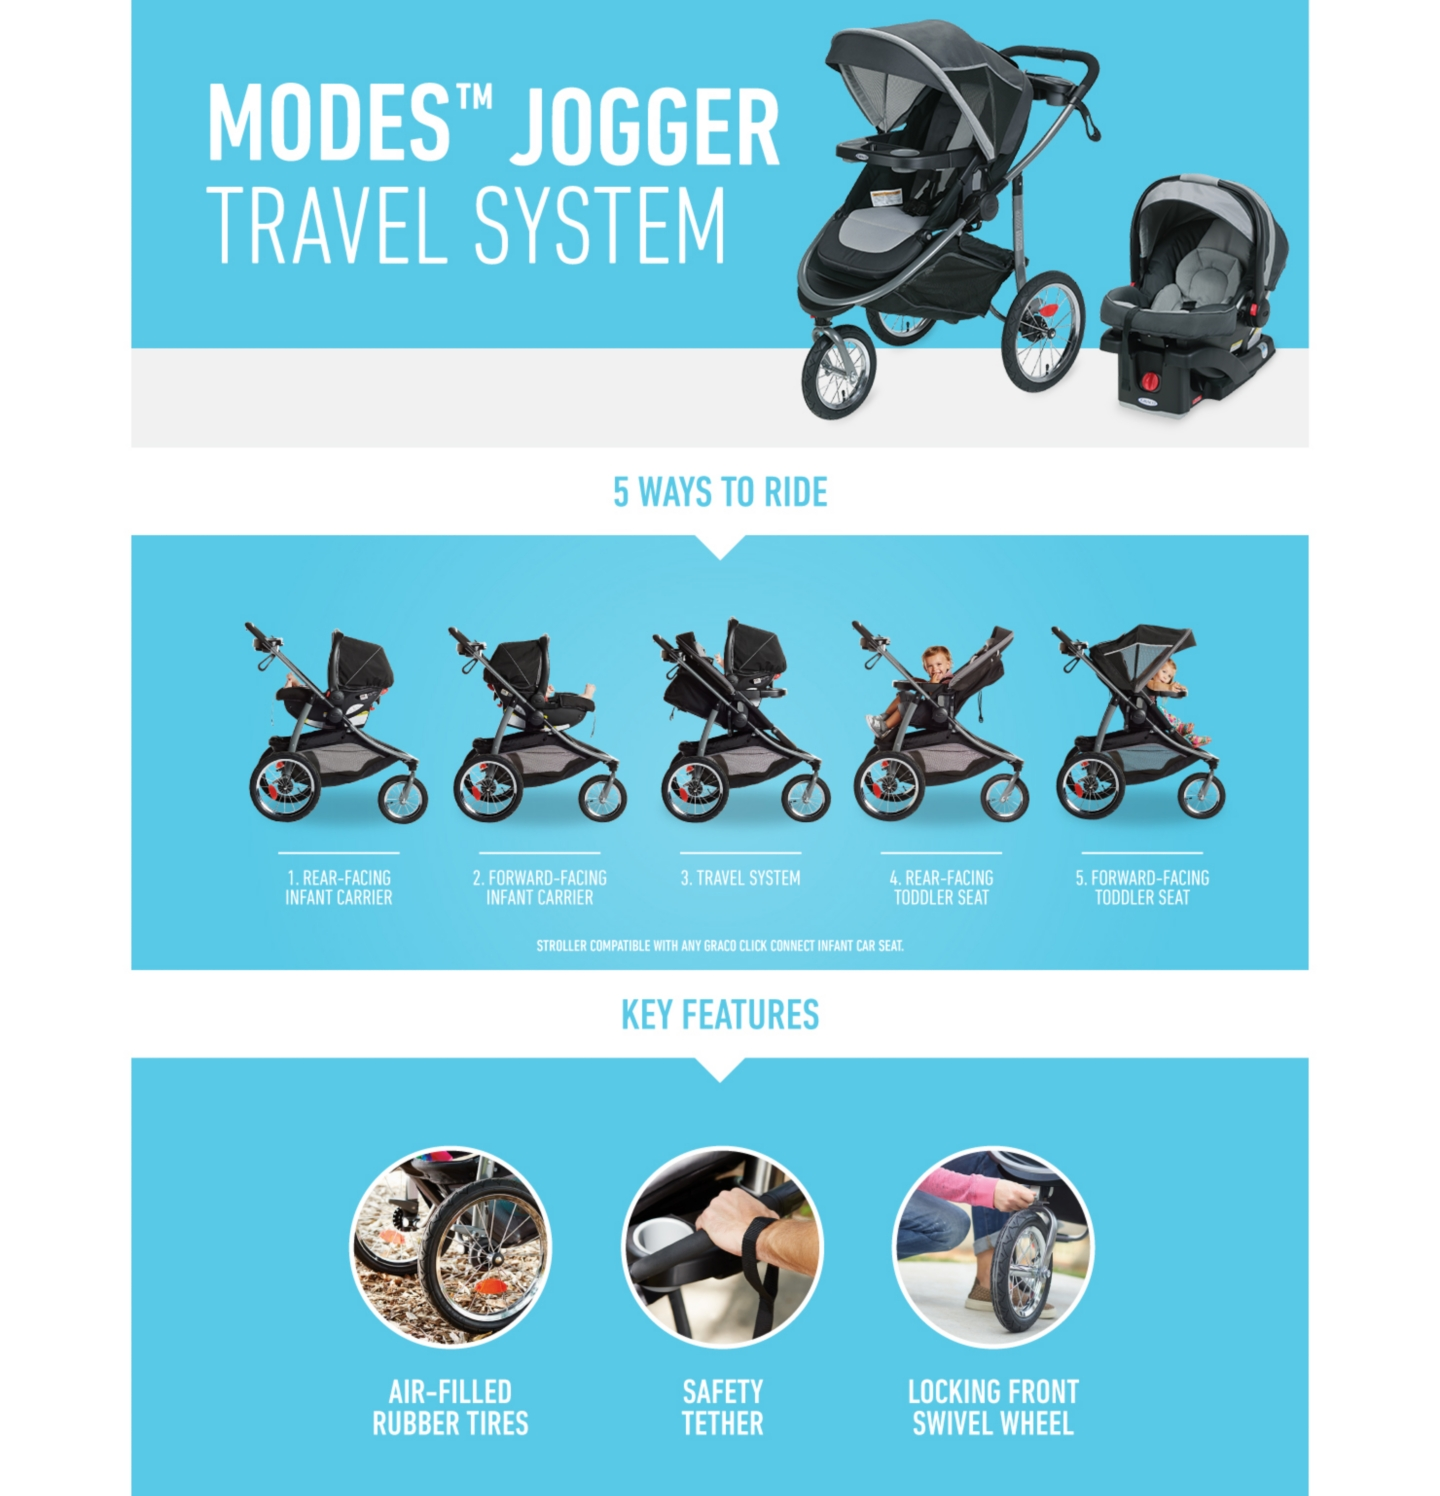 Modes Jogger Travel System